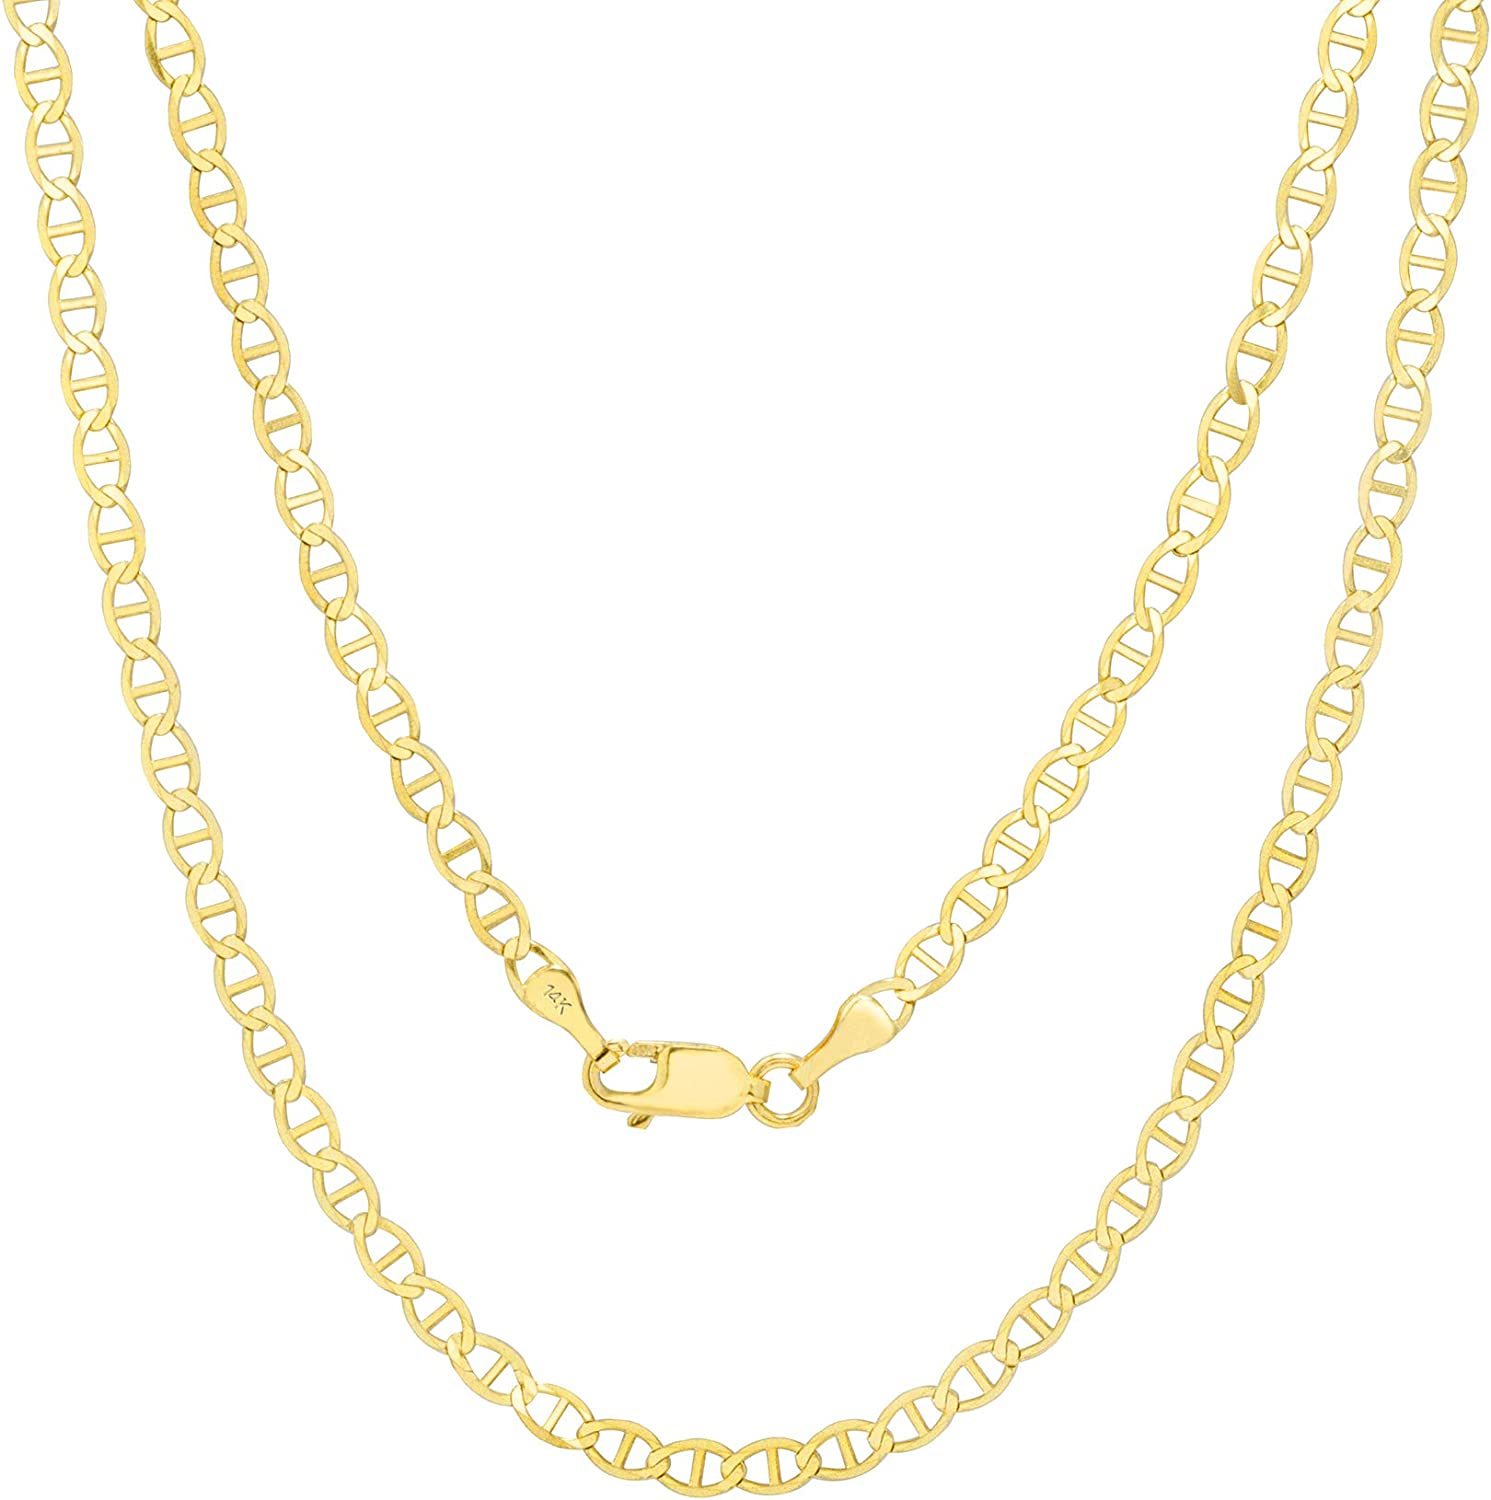 Nuragold 14k Yellow Gold Solid 4mm Anchor Mariner Link Chain Pendant Necklace, Mens Womens Lobster Lock 16